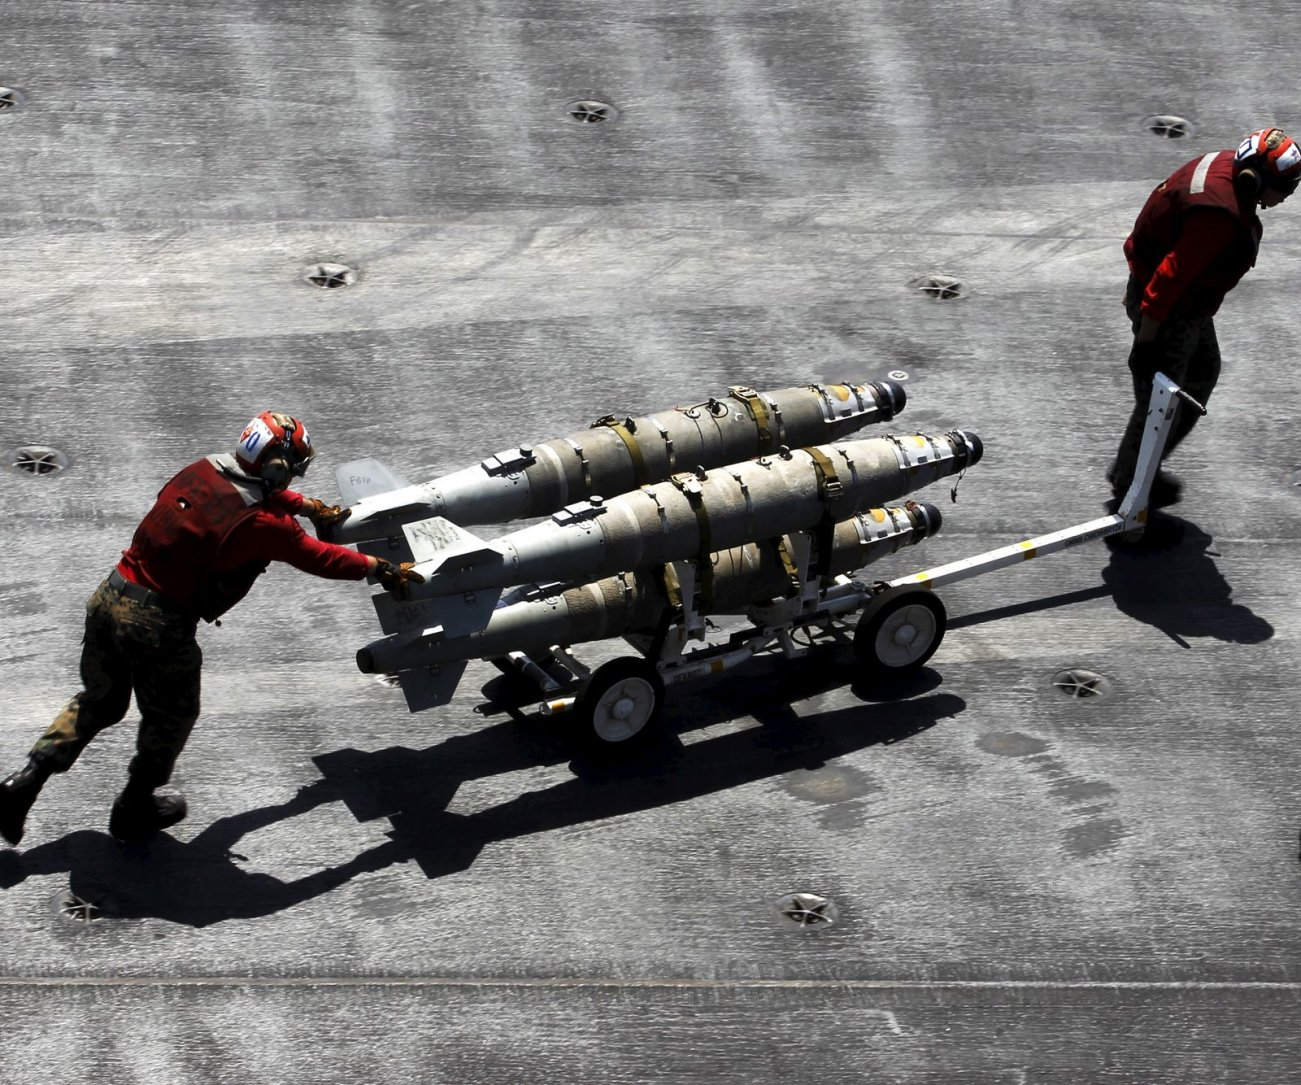 See These Bomb? They Could Sink China's Aircraft Carriers